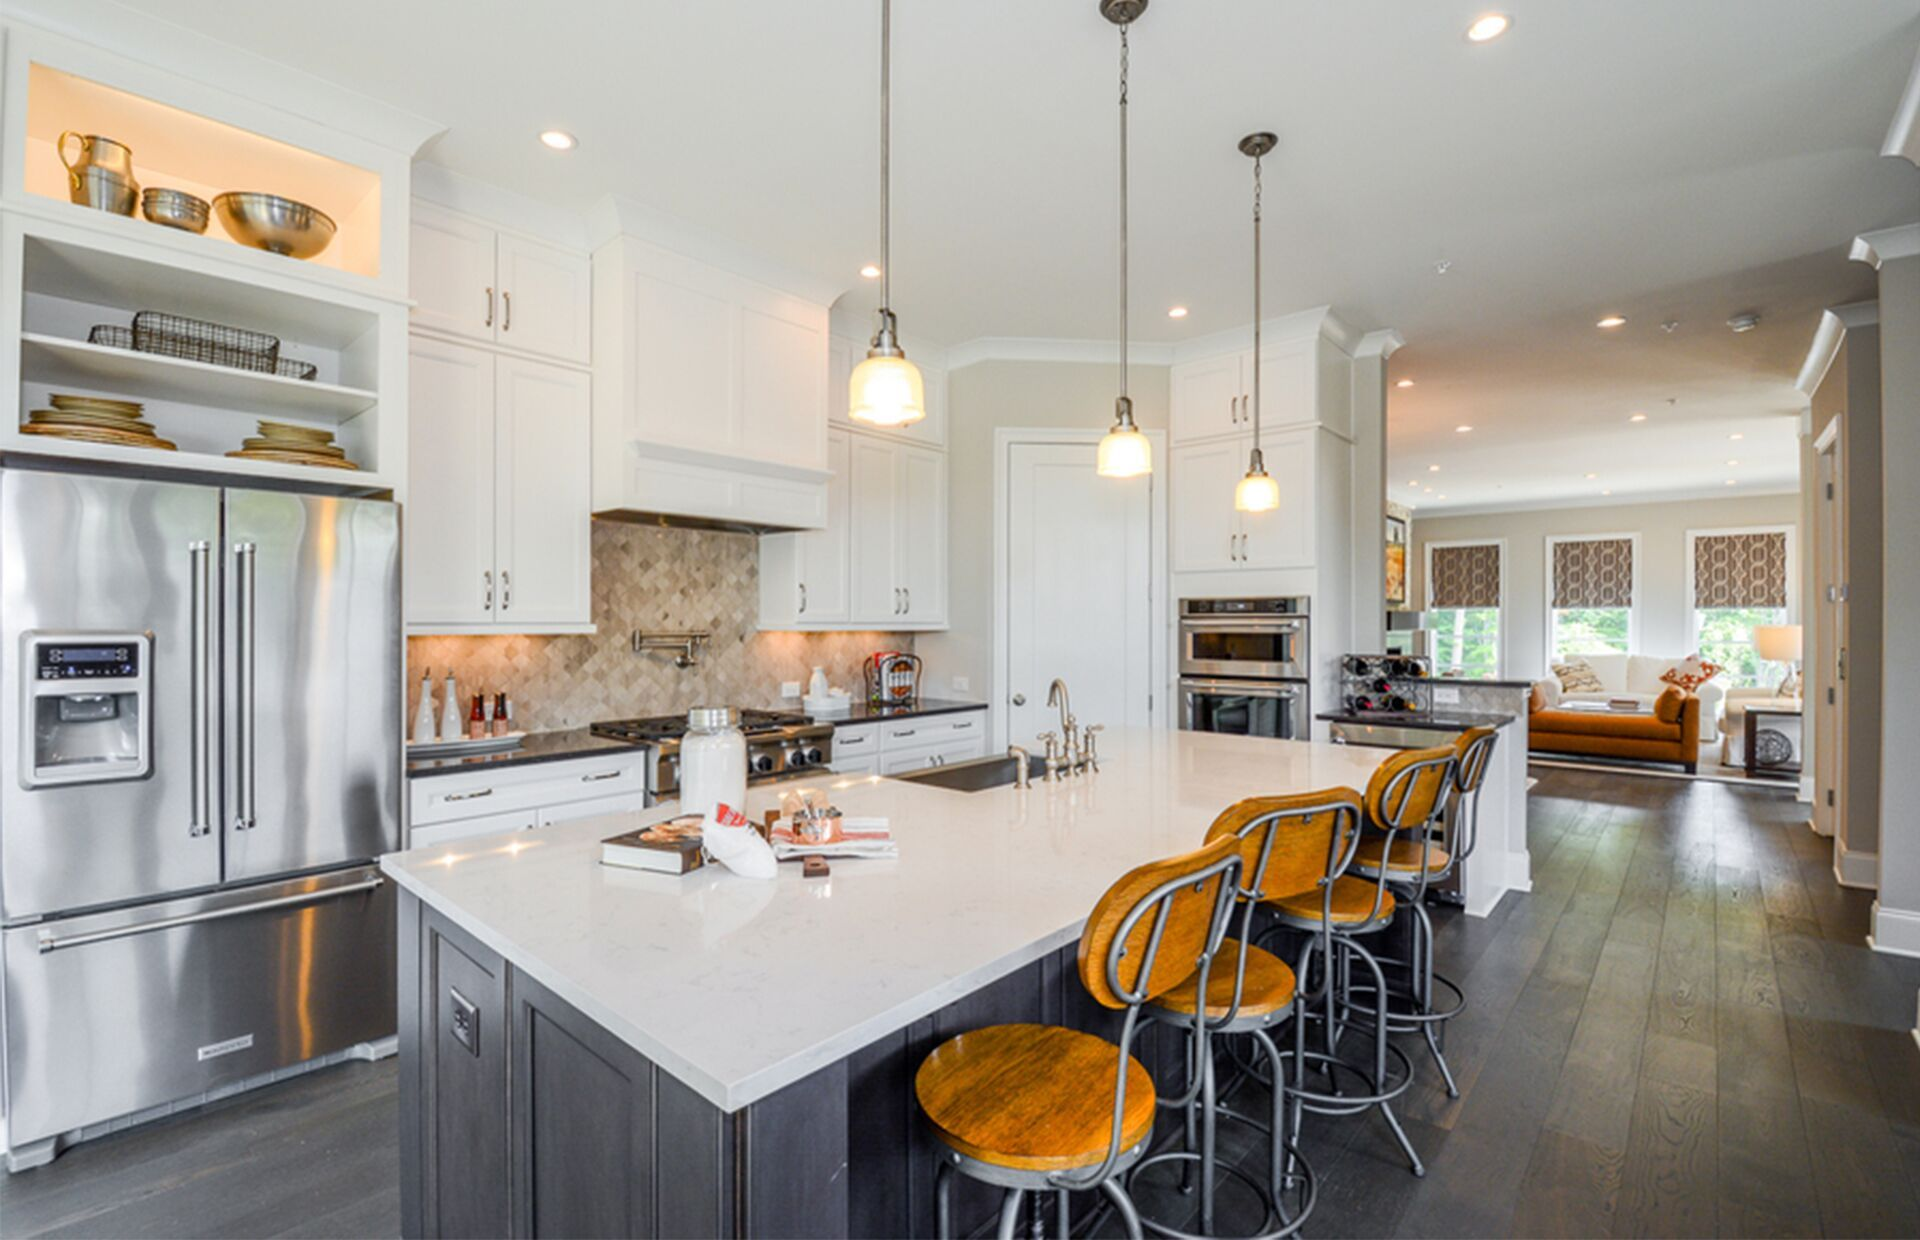 White Cabinets Different Island Cabinets I Like The Bar Stools Too Dream Kitchen Pulte Homes Industrial Interiors